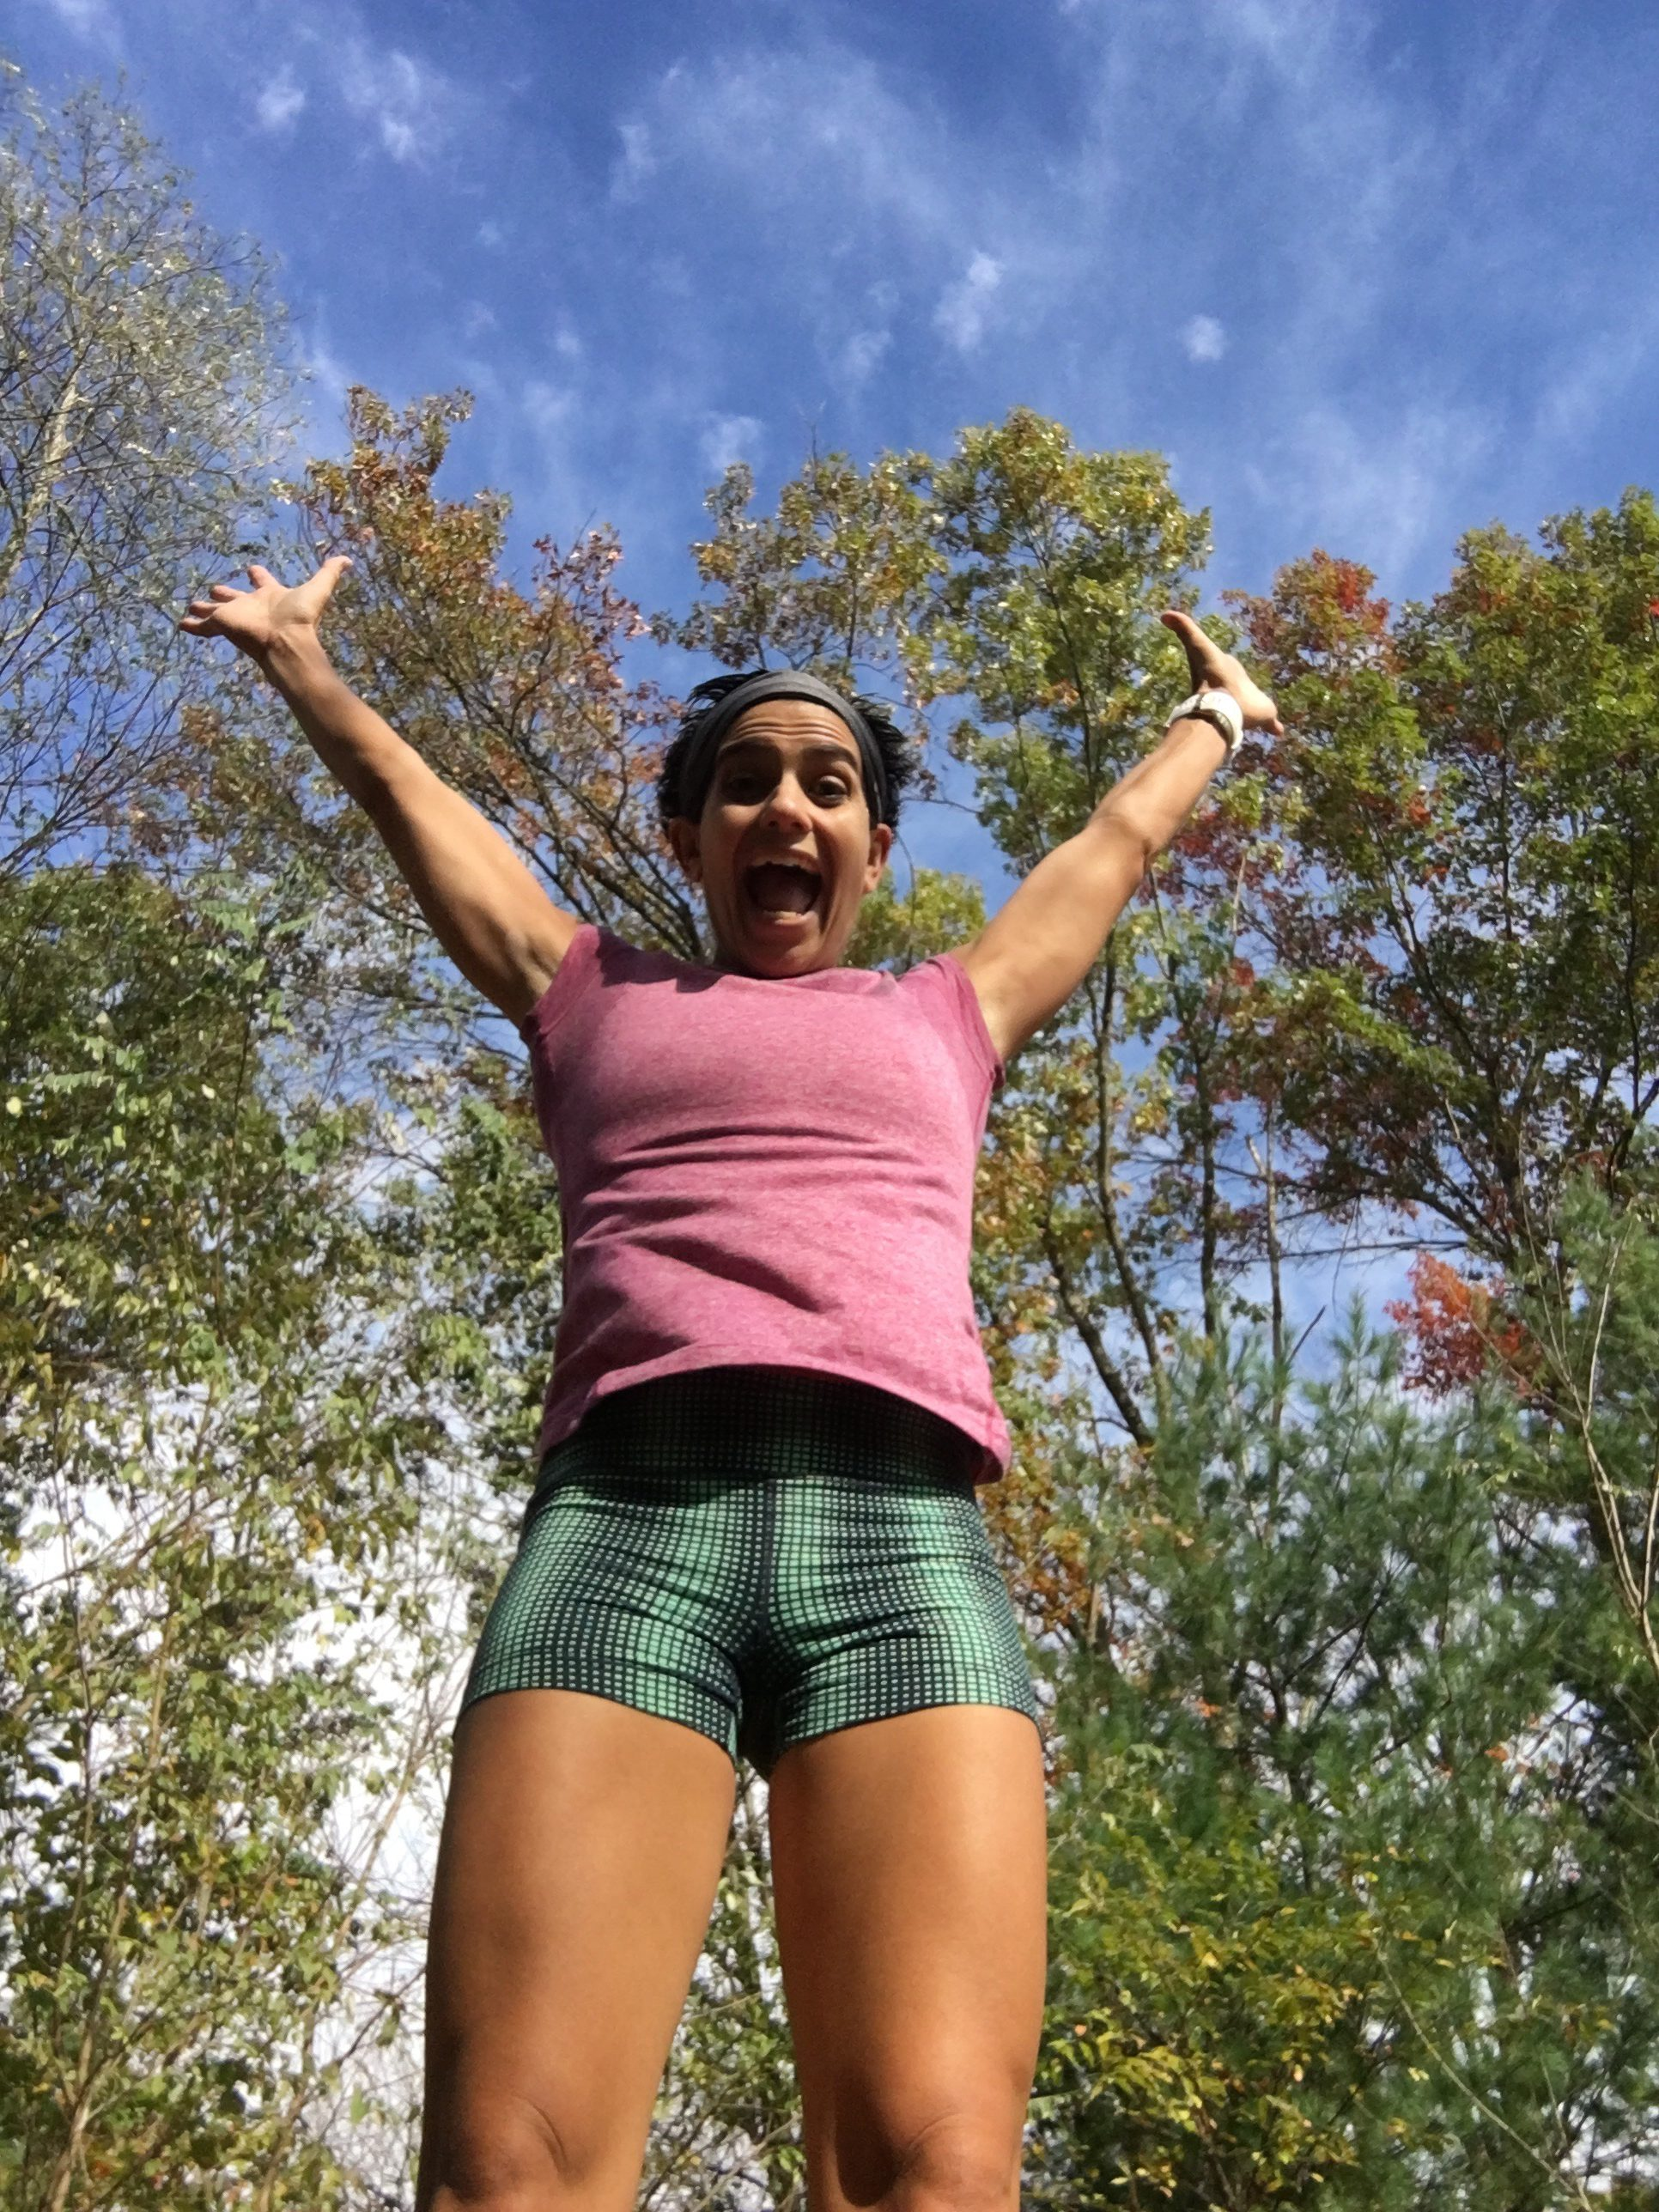 Jumping for joy because the fox didn't get me on the run in the woods!